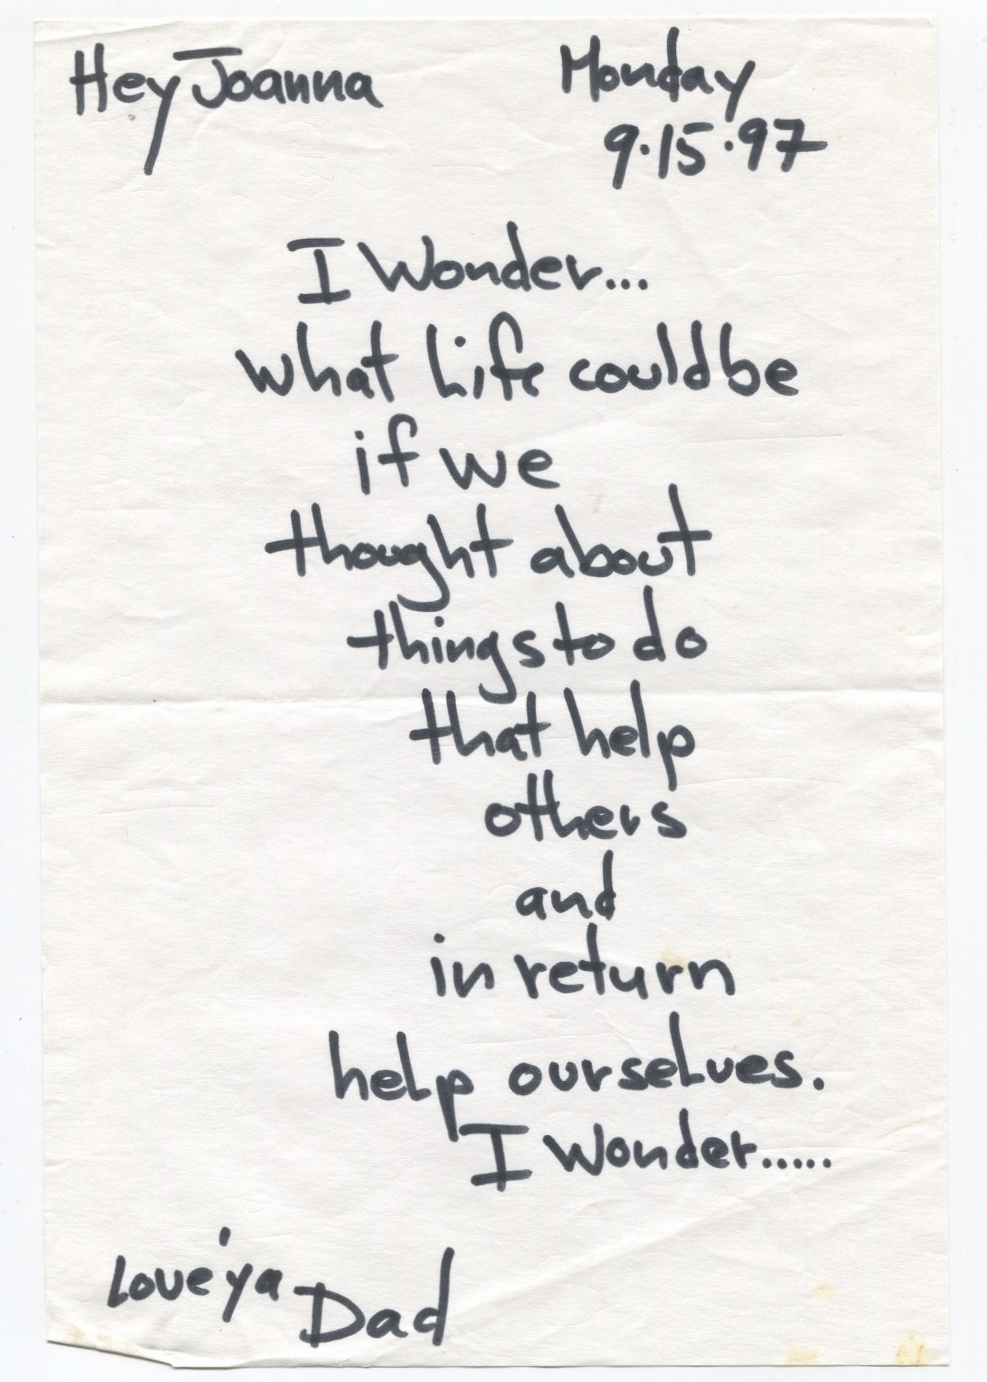 I wonder... what Life could be if we thought about things to do that help others and in return help ourselves. I wonder........ Love 'ya.